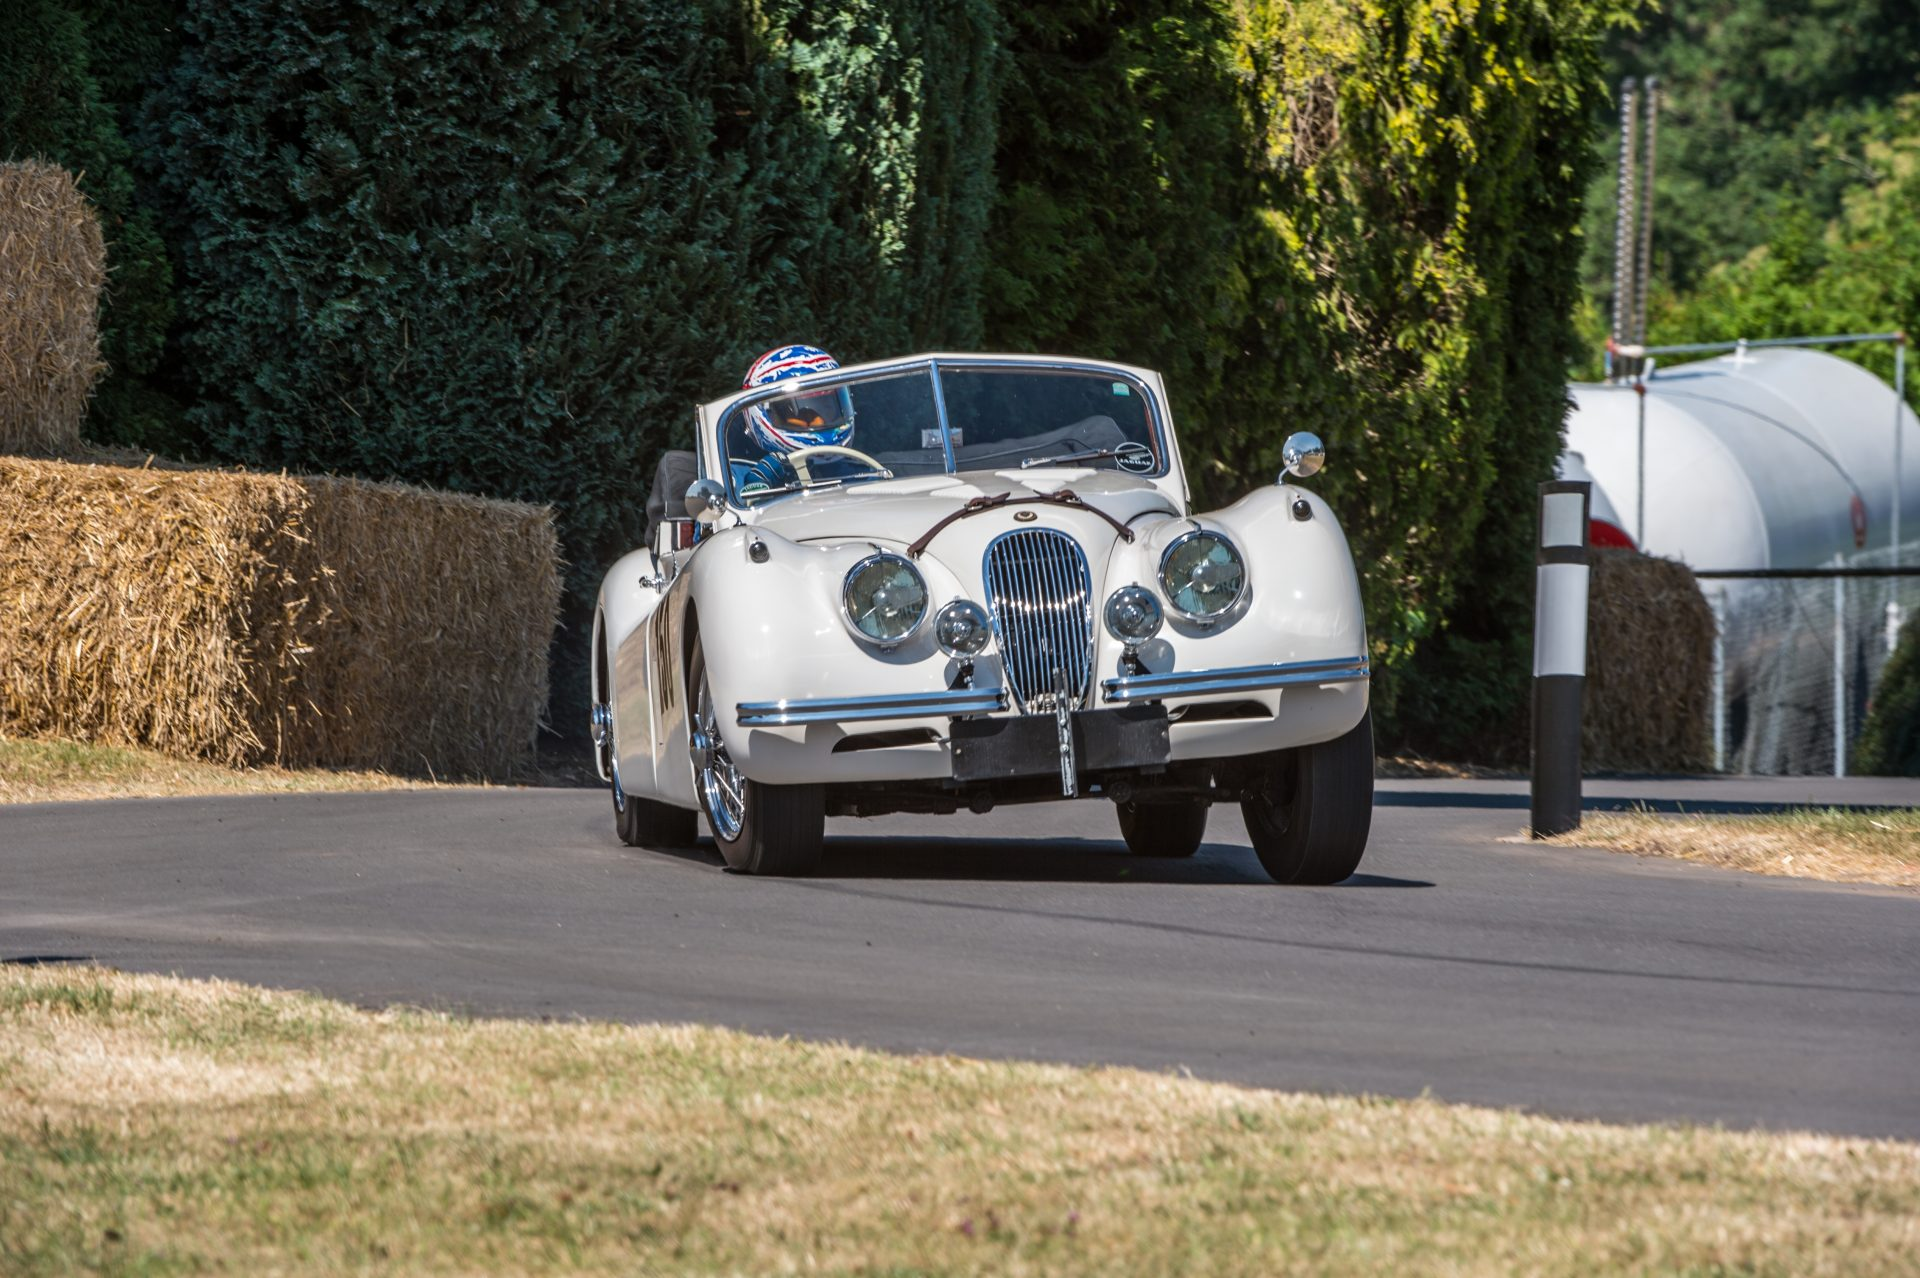 A photo of a white Jaguar XK cornering at the Chateau Impney Hill Climb 2018 where our Classic Car Finance team were in attendance.